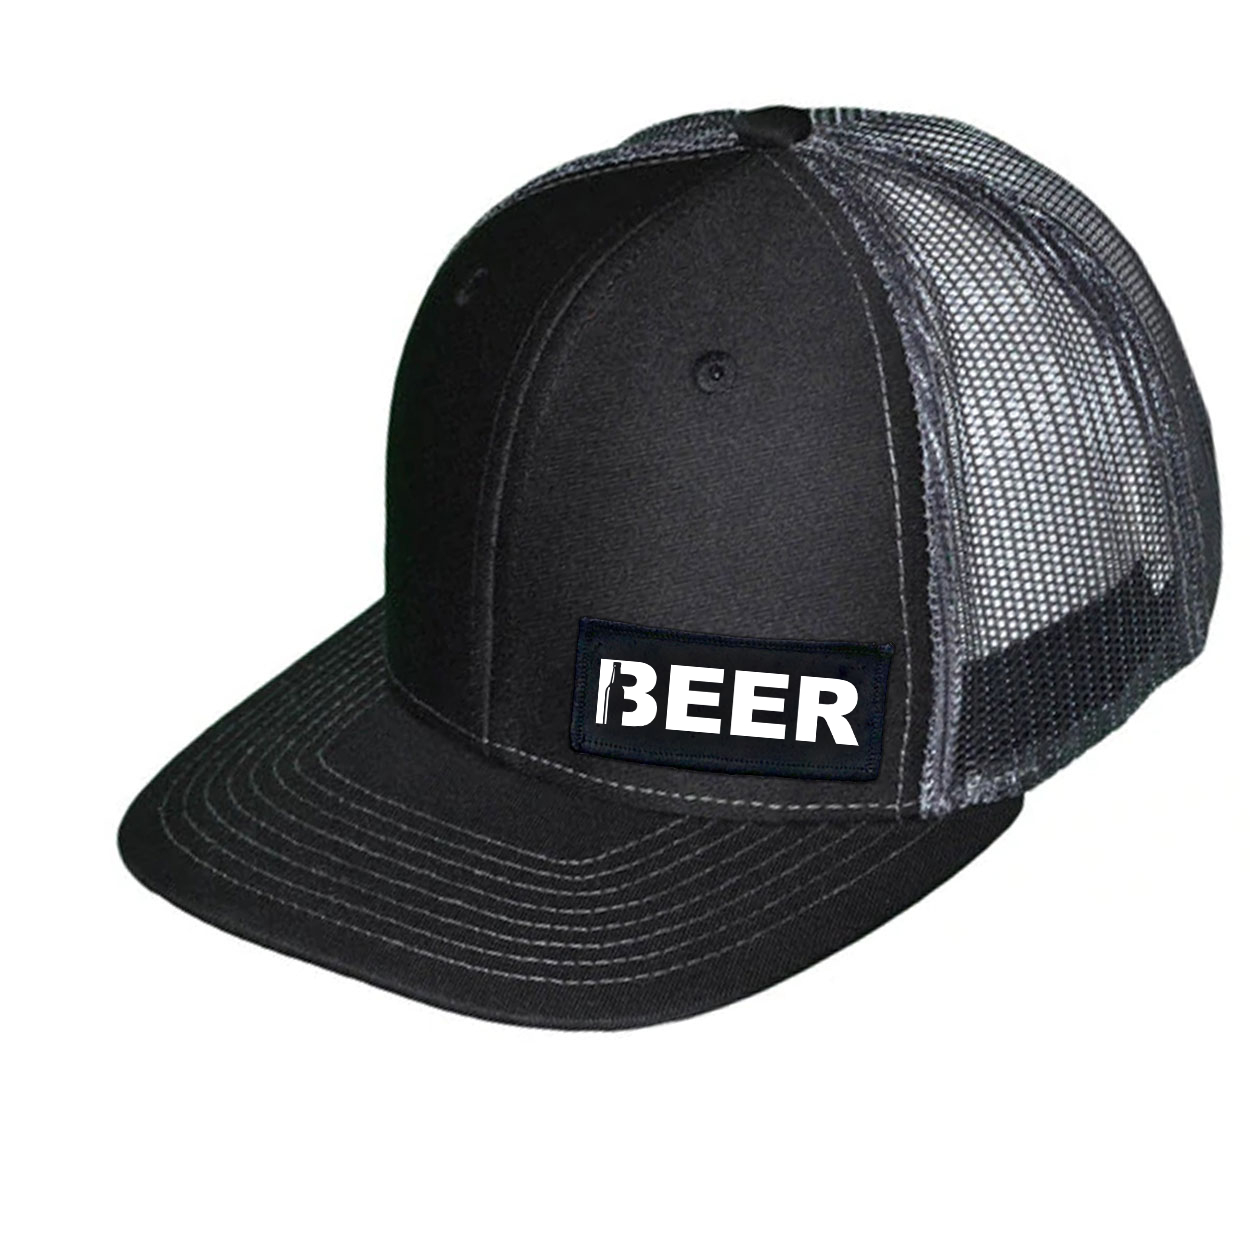 Beer Bottle Logo Night Out Woven Patch Snapback Trucker Hat Black/Dark Gray (White Logo)